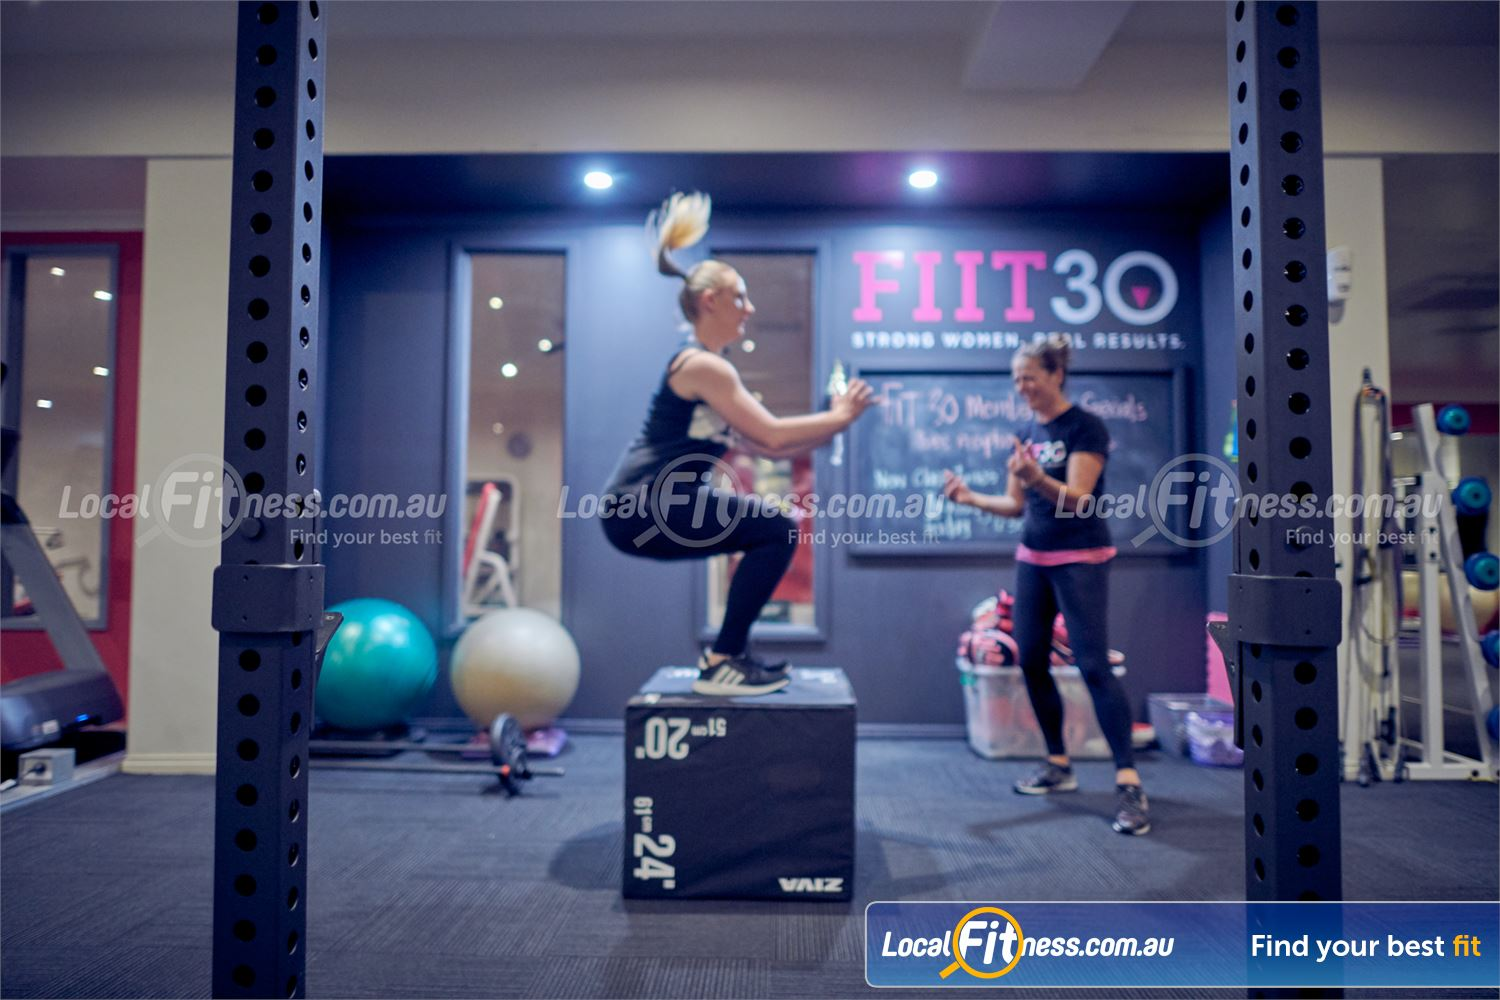 Fernwood Fitness Near Doncaster Train day or night at Fernwood Bulleen 24.7 gym.